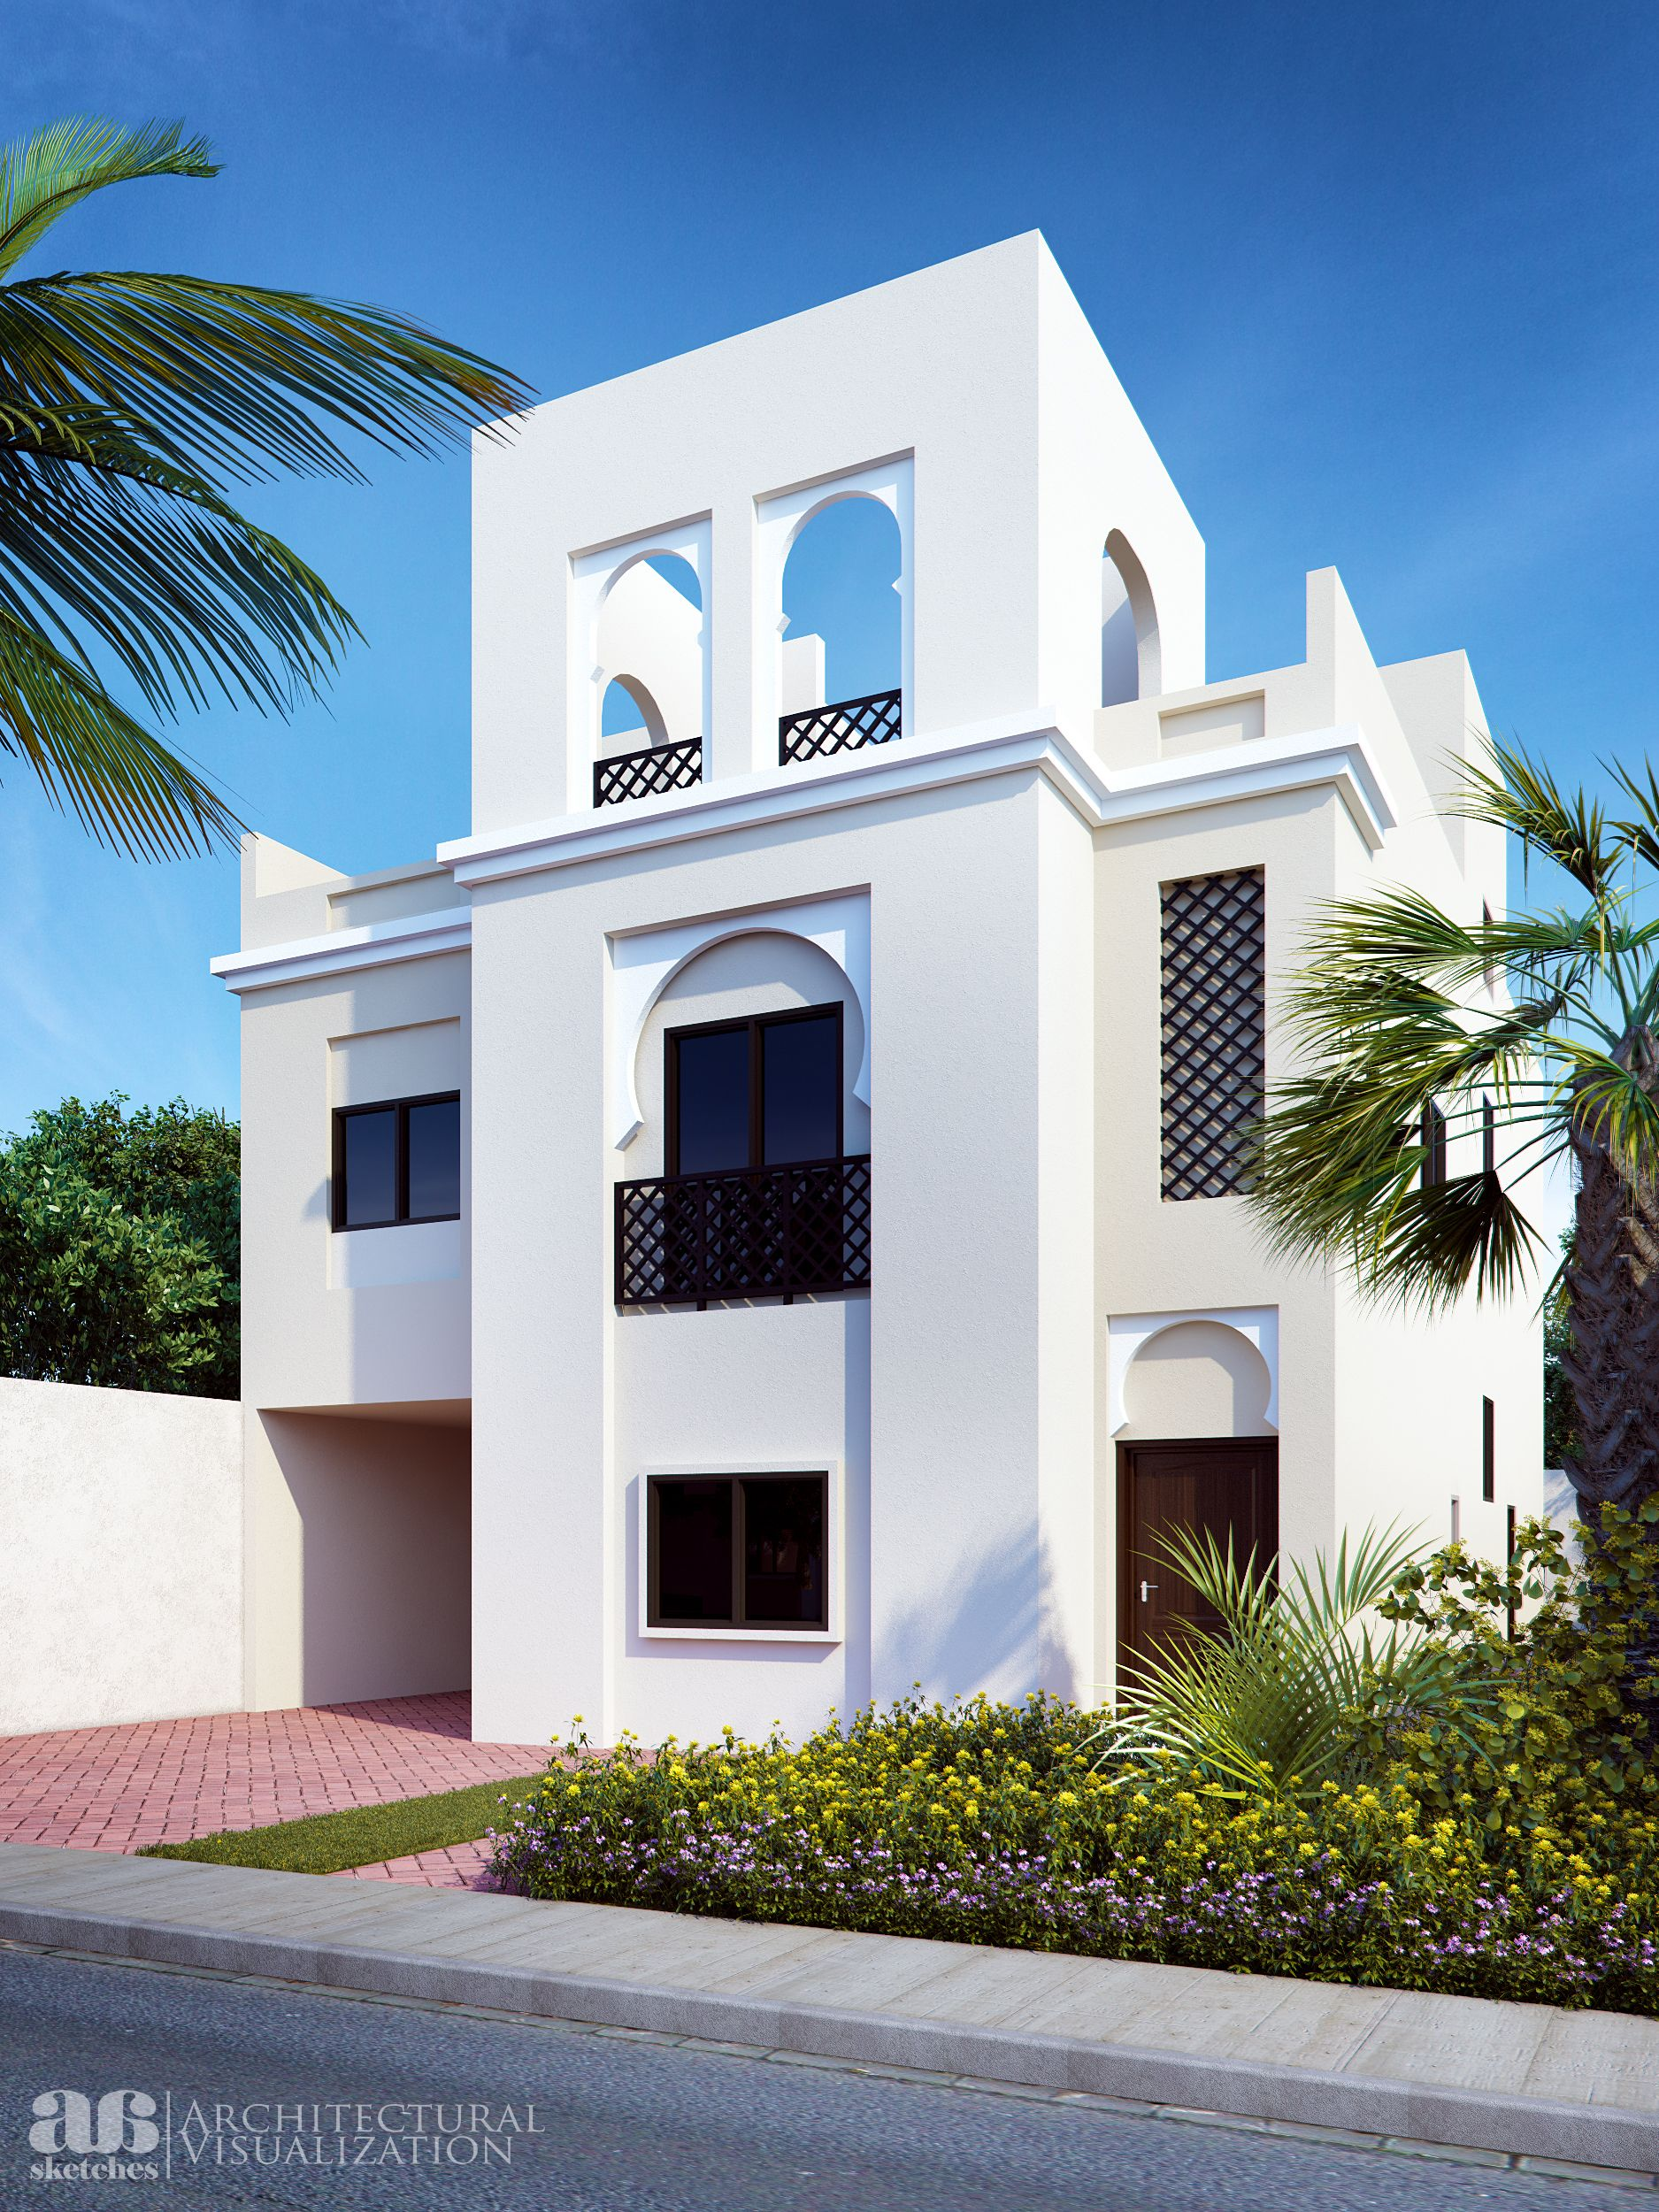 Proposed 3d photo rendering of arabic style villa villa track homes pinterest 3d photo villas and architecture